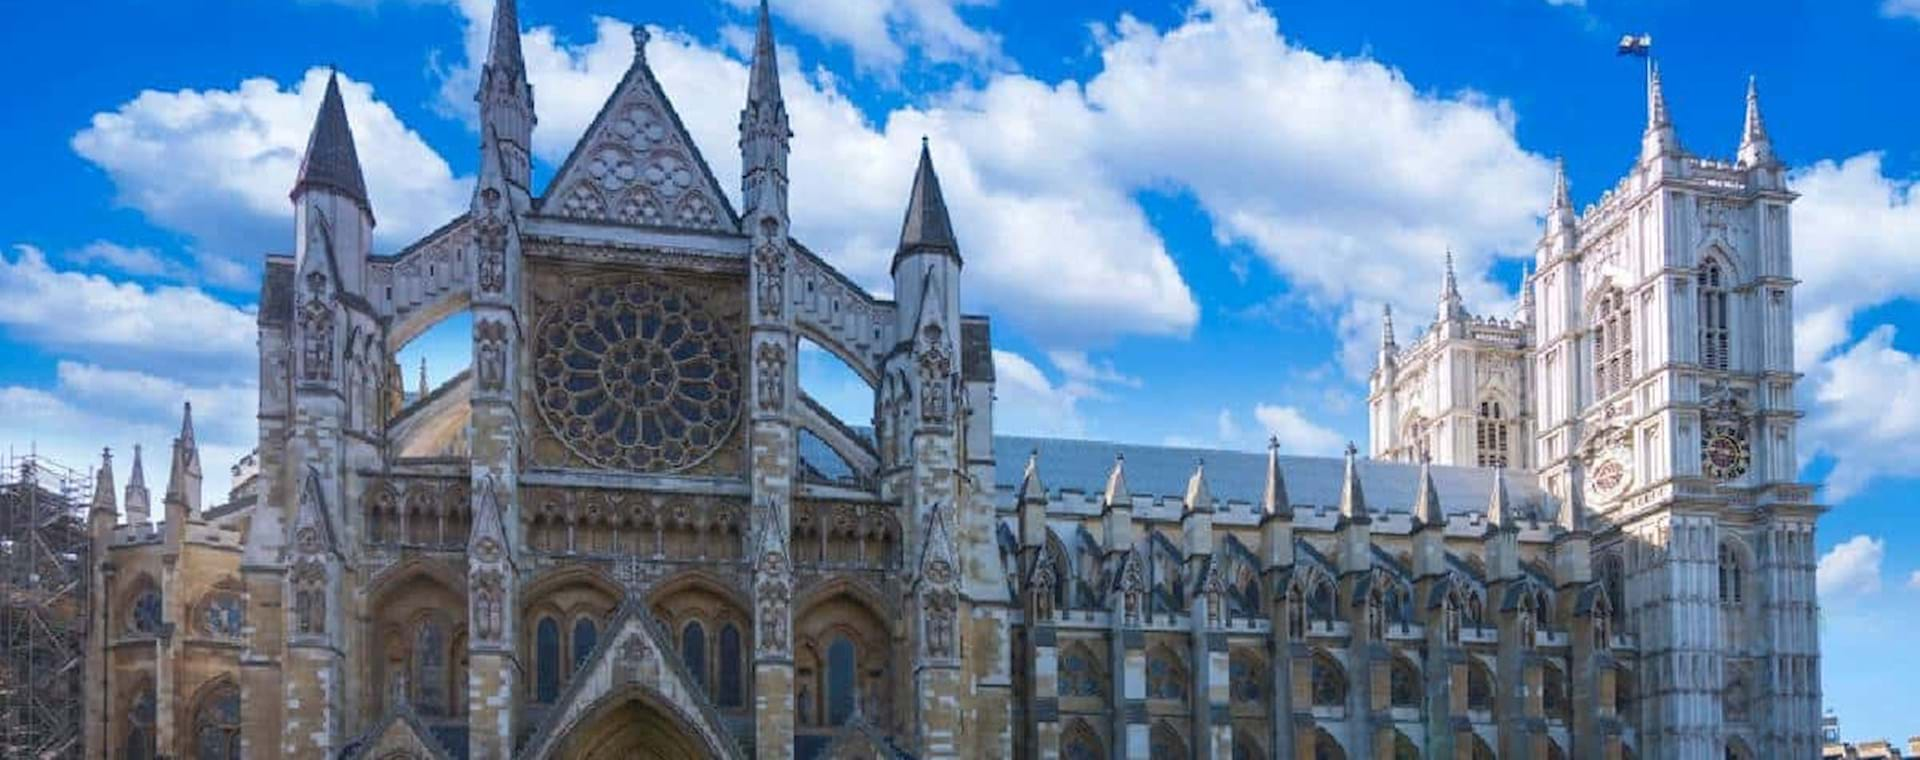 Beautiful view of Westminster Abbey